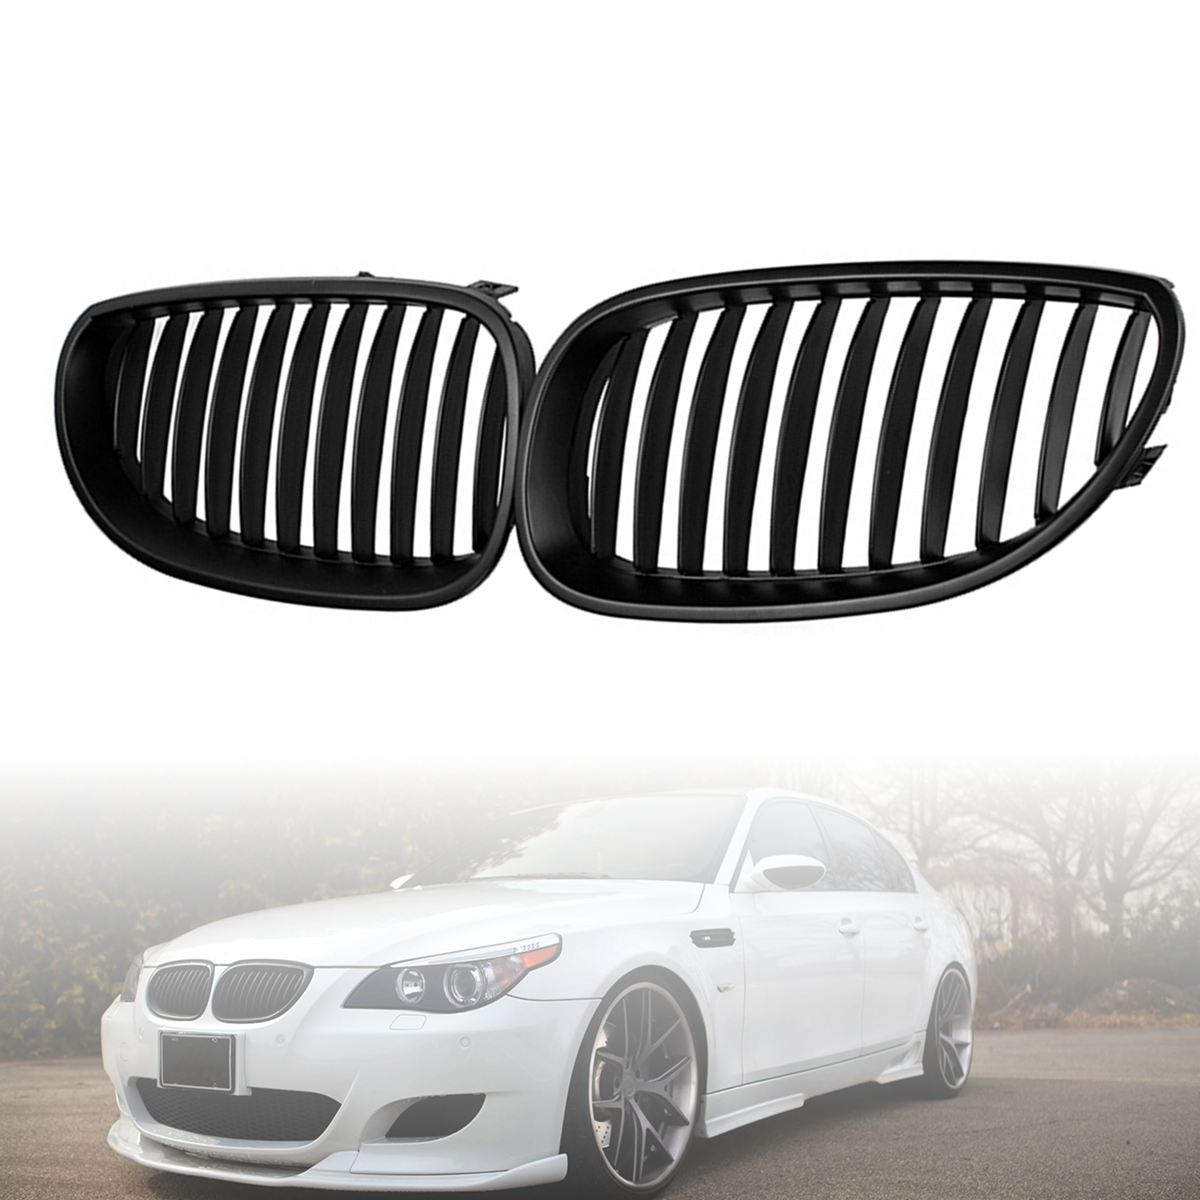 2pcs Front Black Sport Wide Kidney Grille Grill For BMW E60 E61 5 Series M5 2003-2009 e60 abs front kidney grille grill for bmw 5 series e60 2004 2009 sedan e61 hatchback 1 slat 2 slat 535i 545i